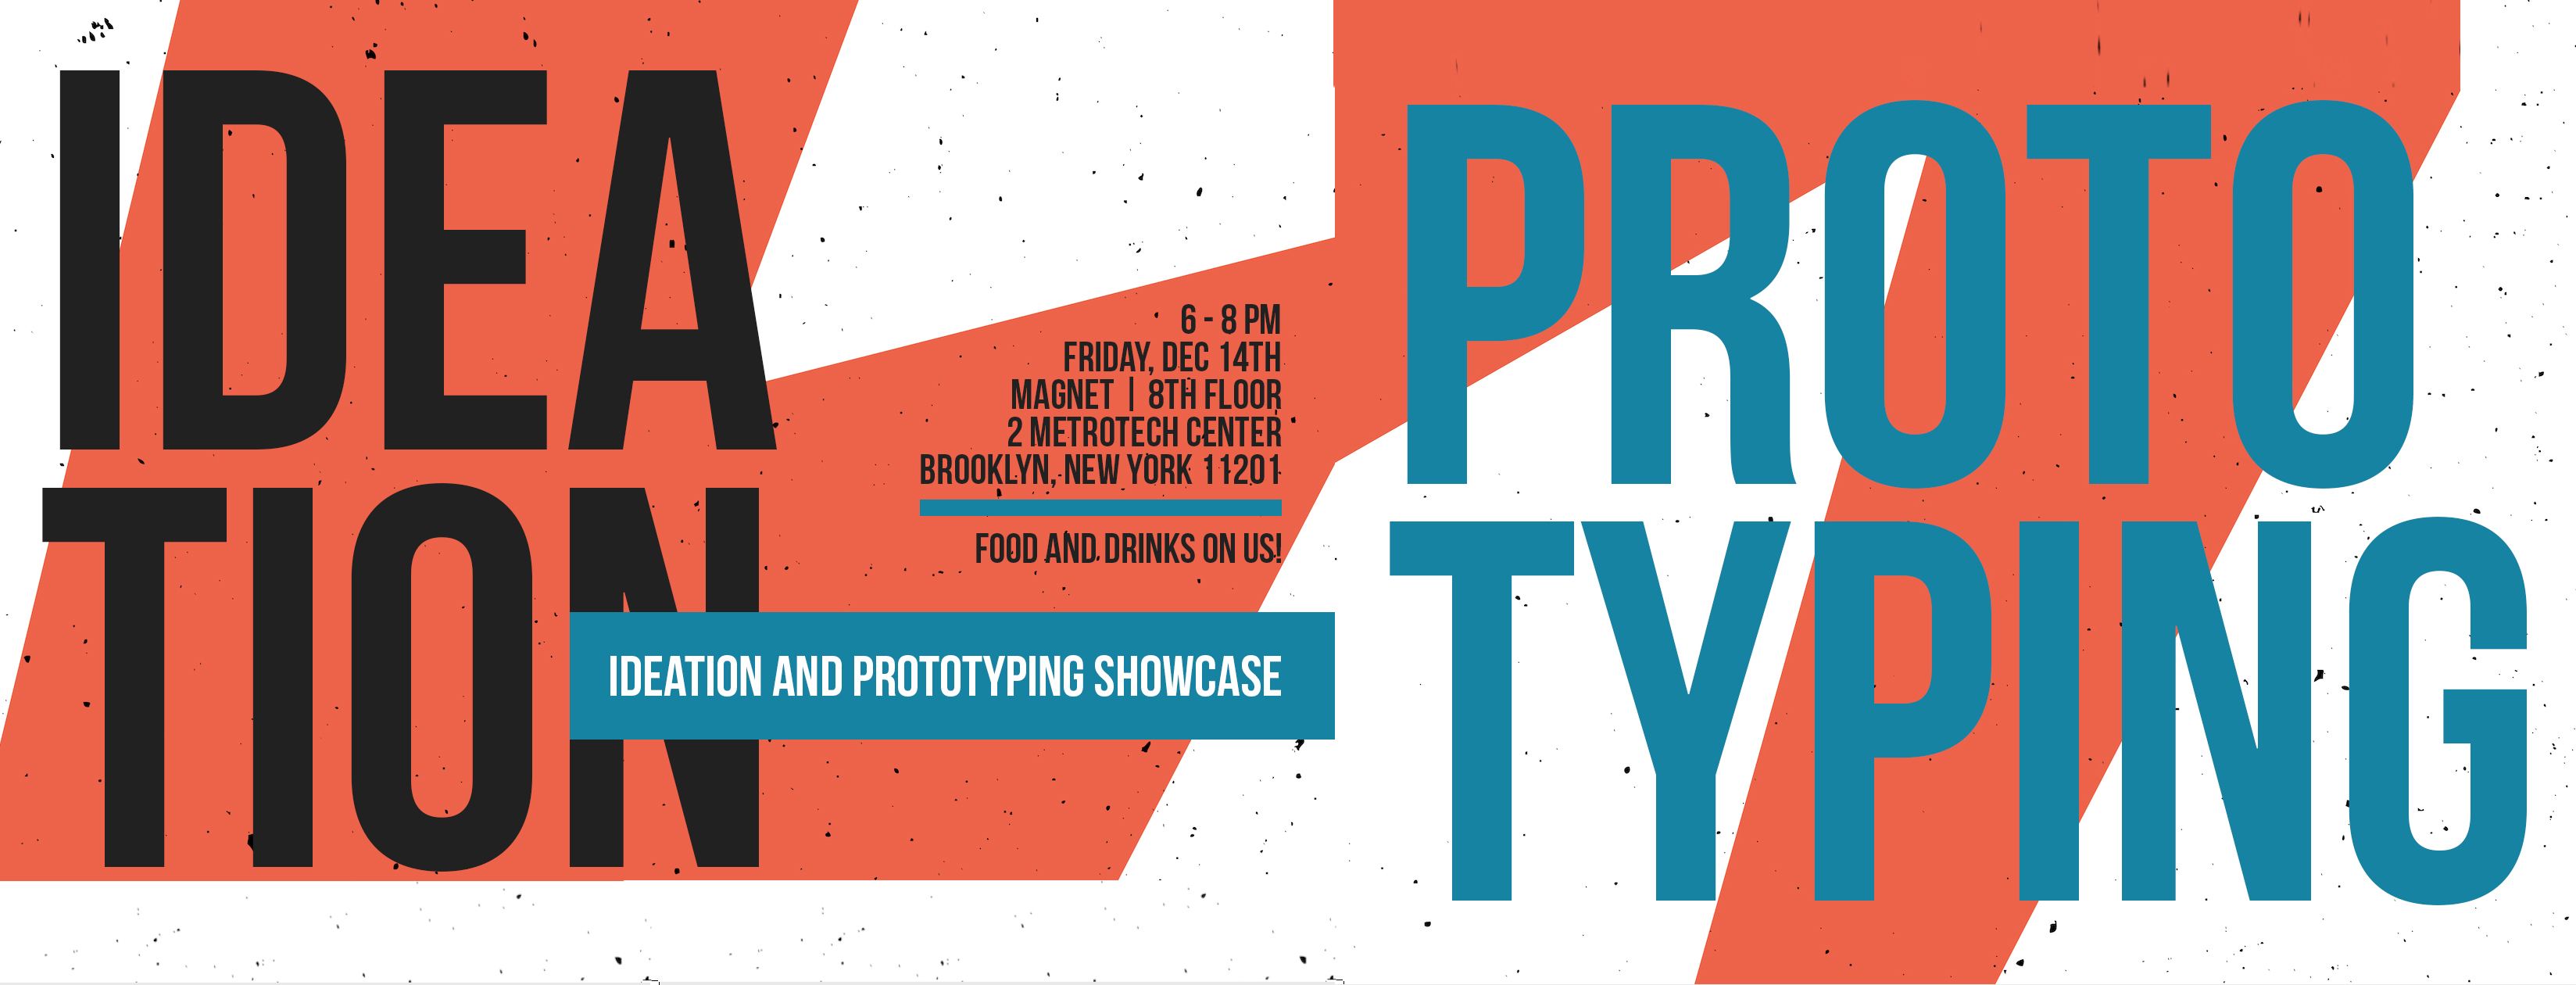 Ideation and Prototyping Exhibition